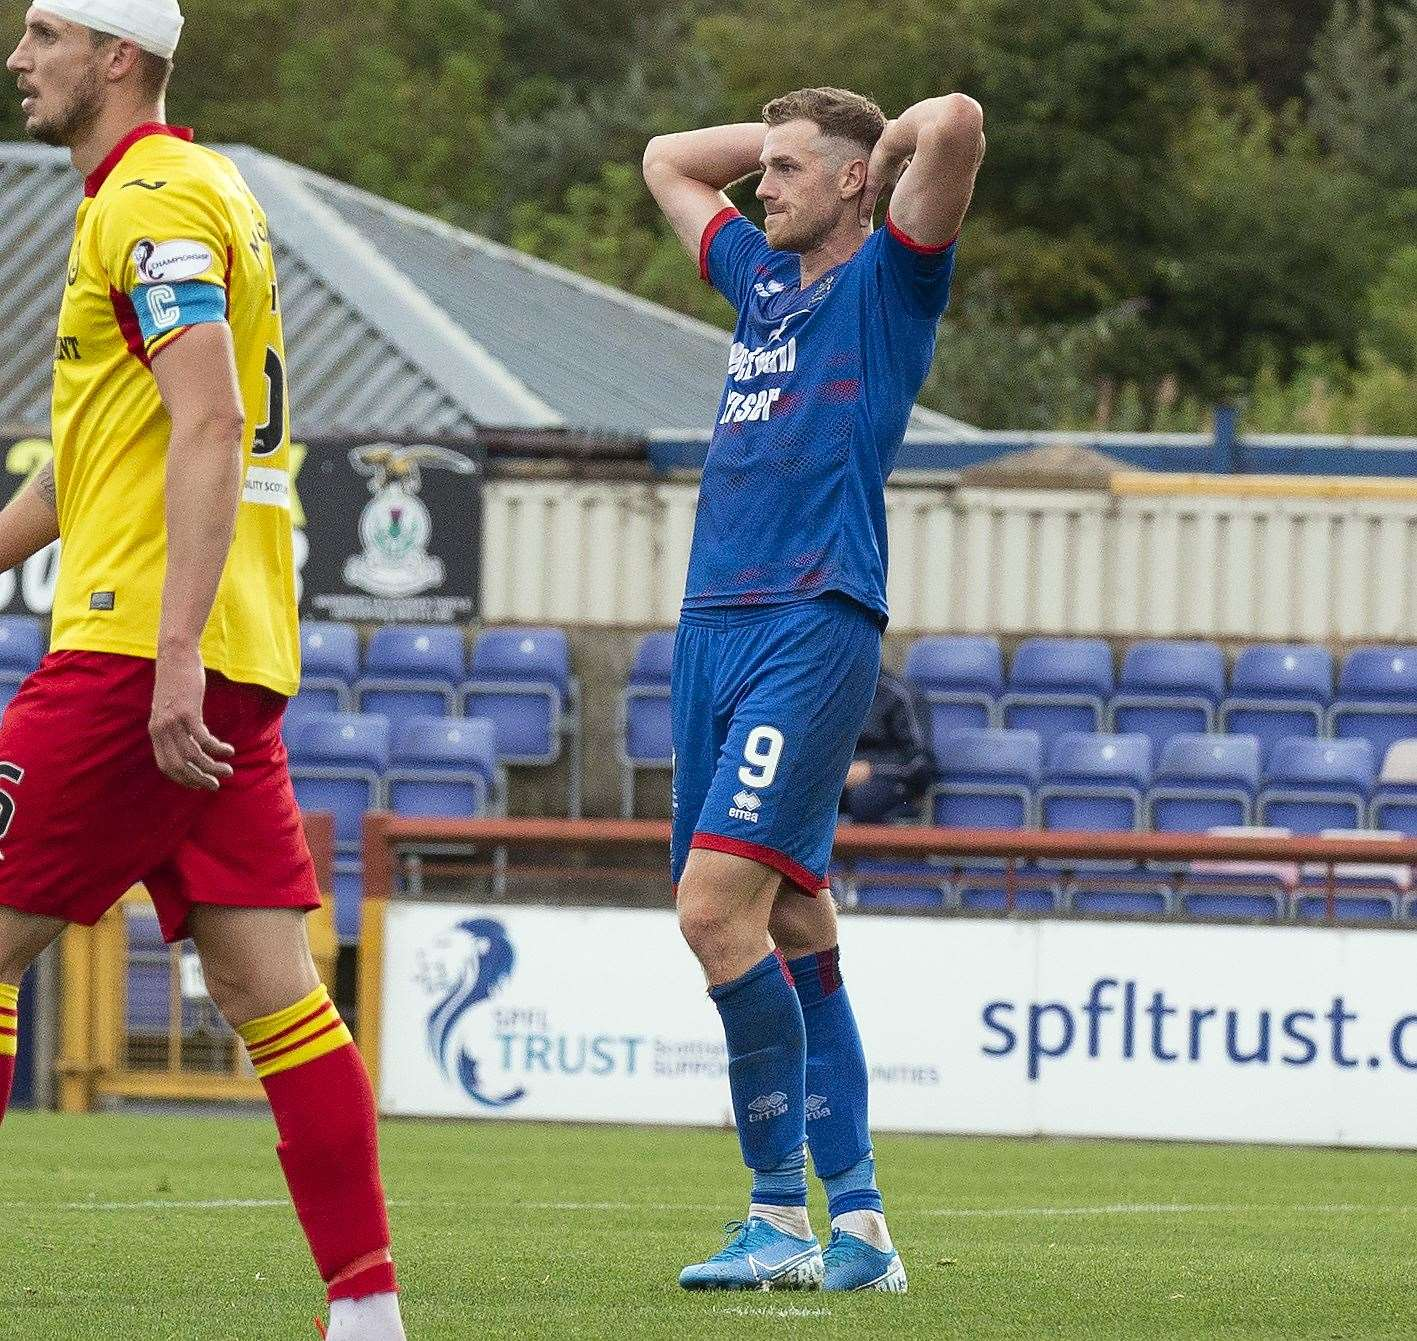 Jordan White put Inverness Caledonian Thistle in front.